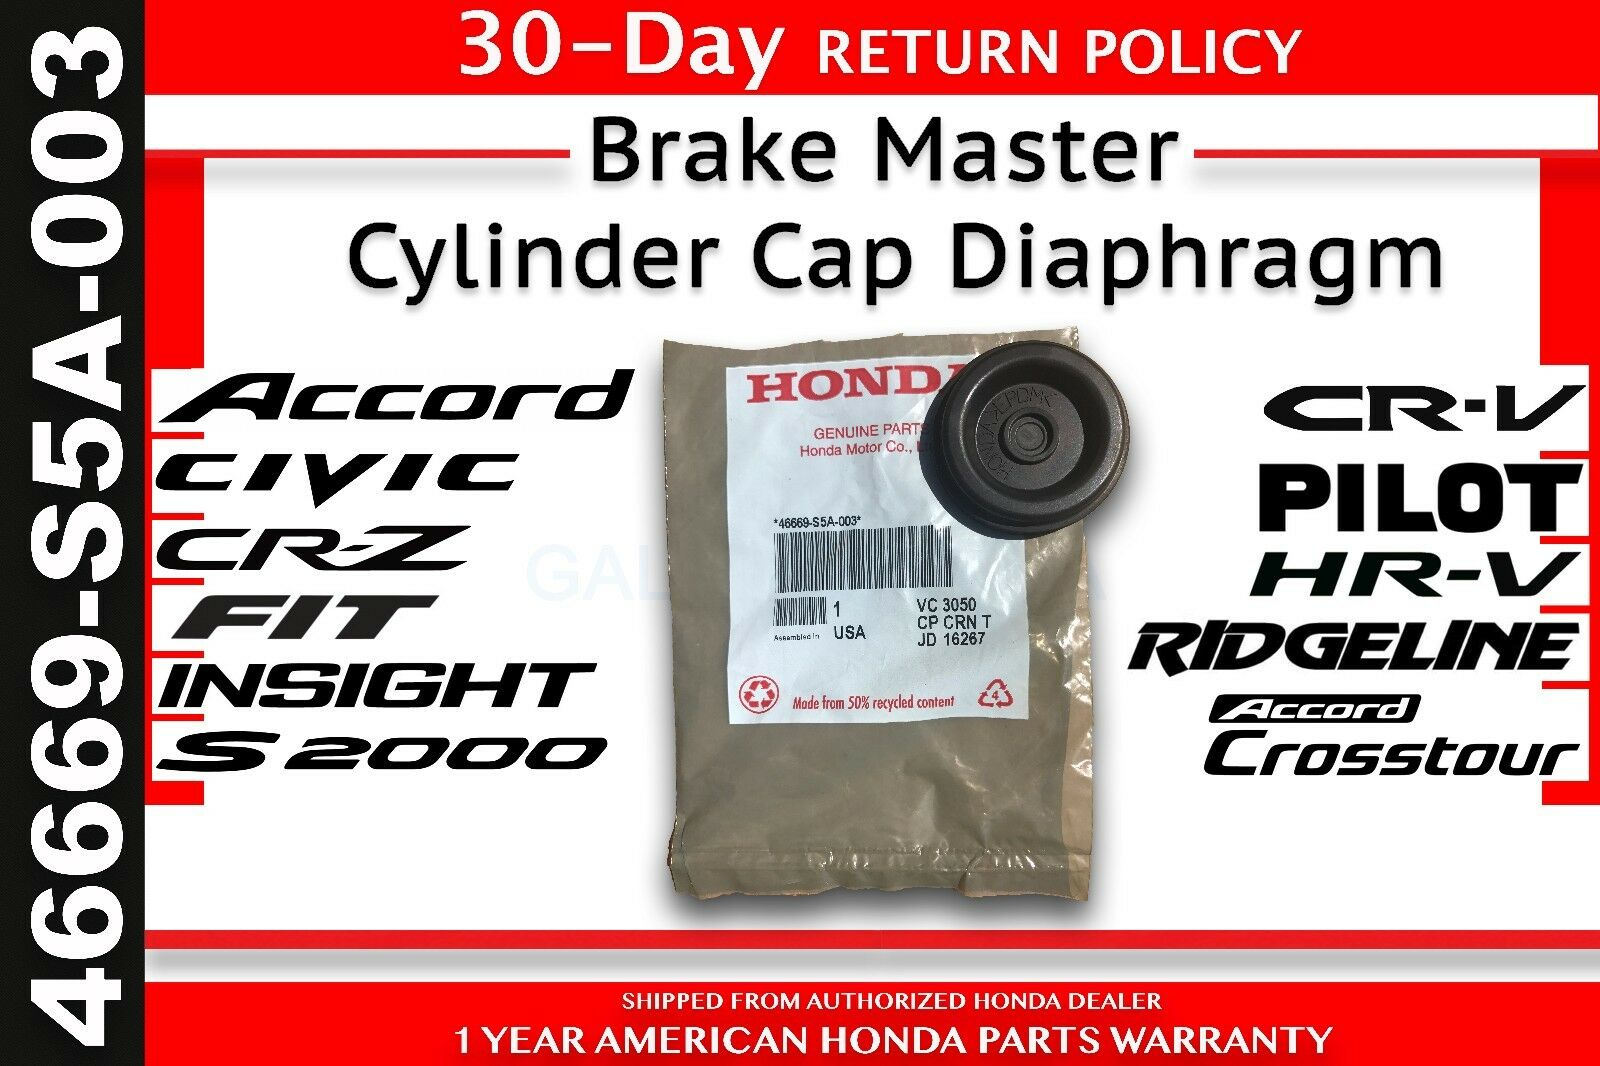 Genuine Oem Honda Brake Master Cylinder Cap Diaphragm Spacer 46669 2004 Crv Parts Discount Factory And S5a 003 For Sale